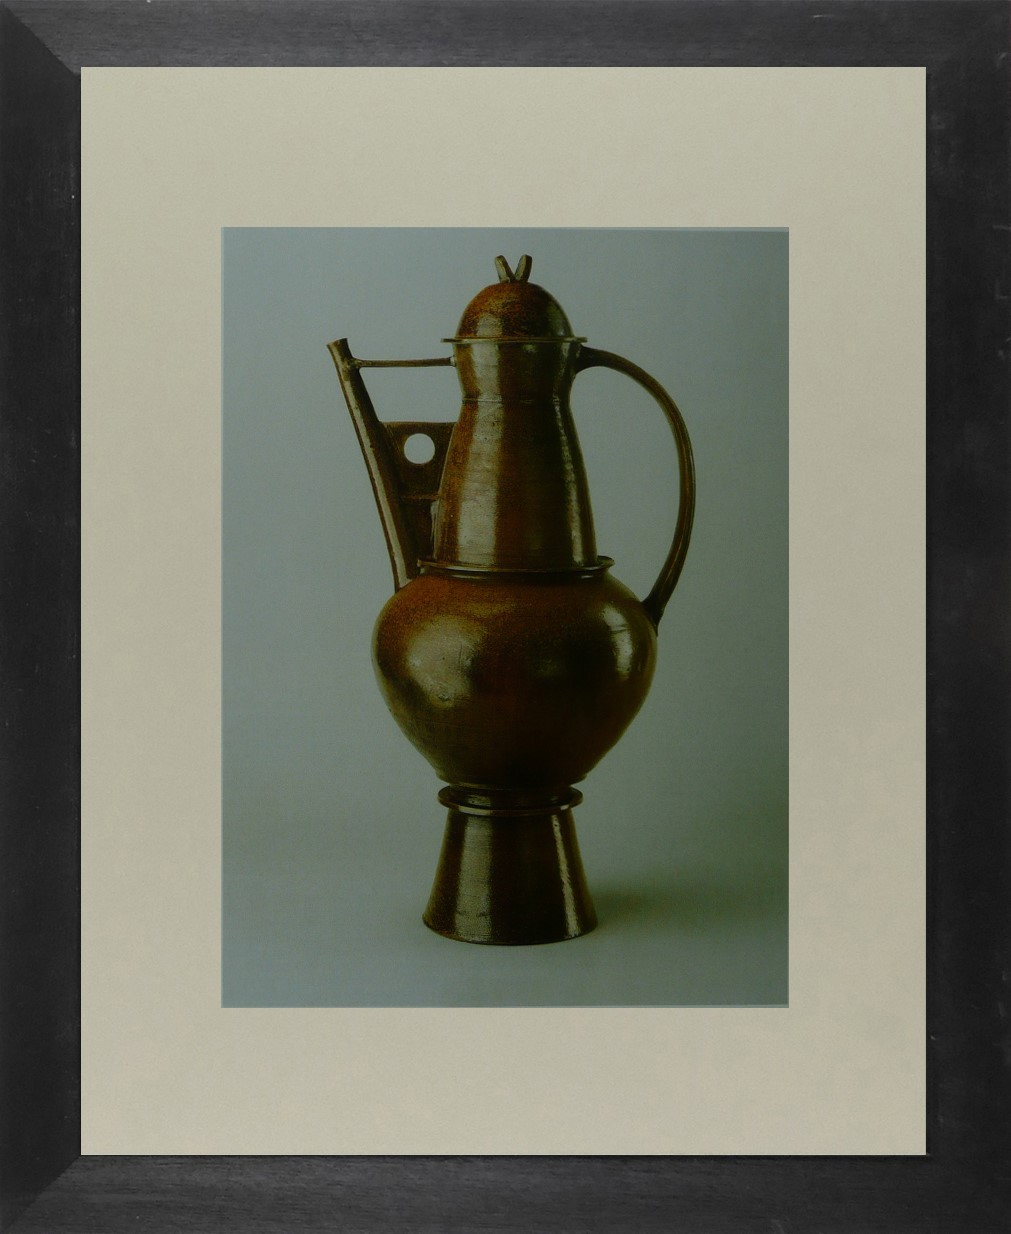 Otto Lindig - Copper kettle  (Bauhaus) - Framed Picture 11 x 14